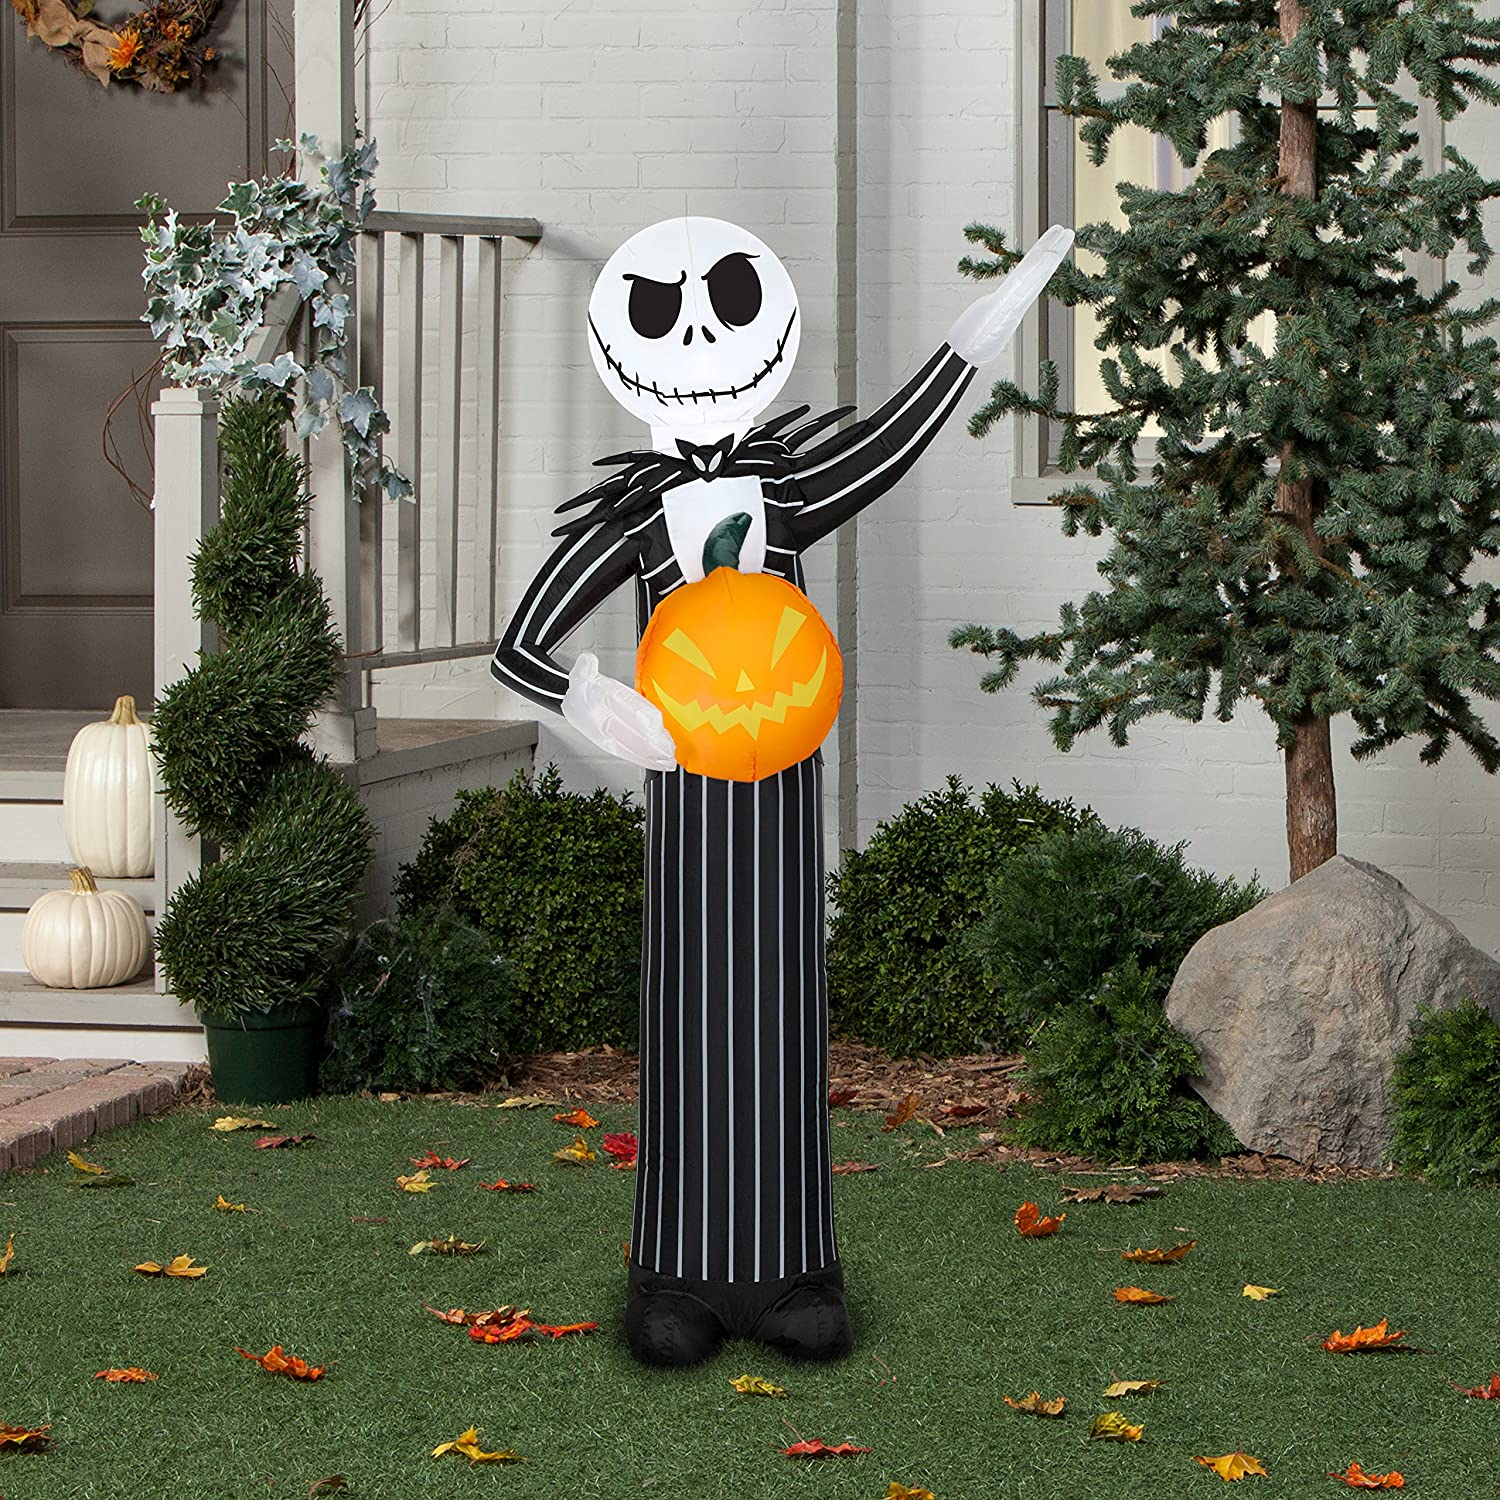 Amazon.com: Disney Gemmy Nightmare Before Christmas Jack Skellington ...